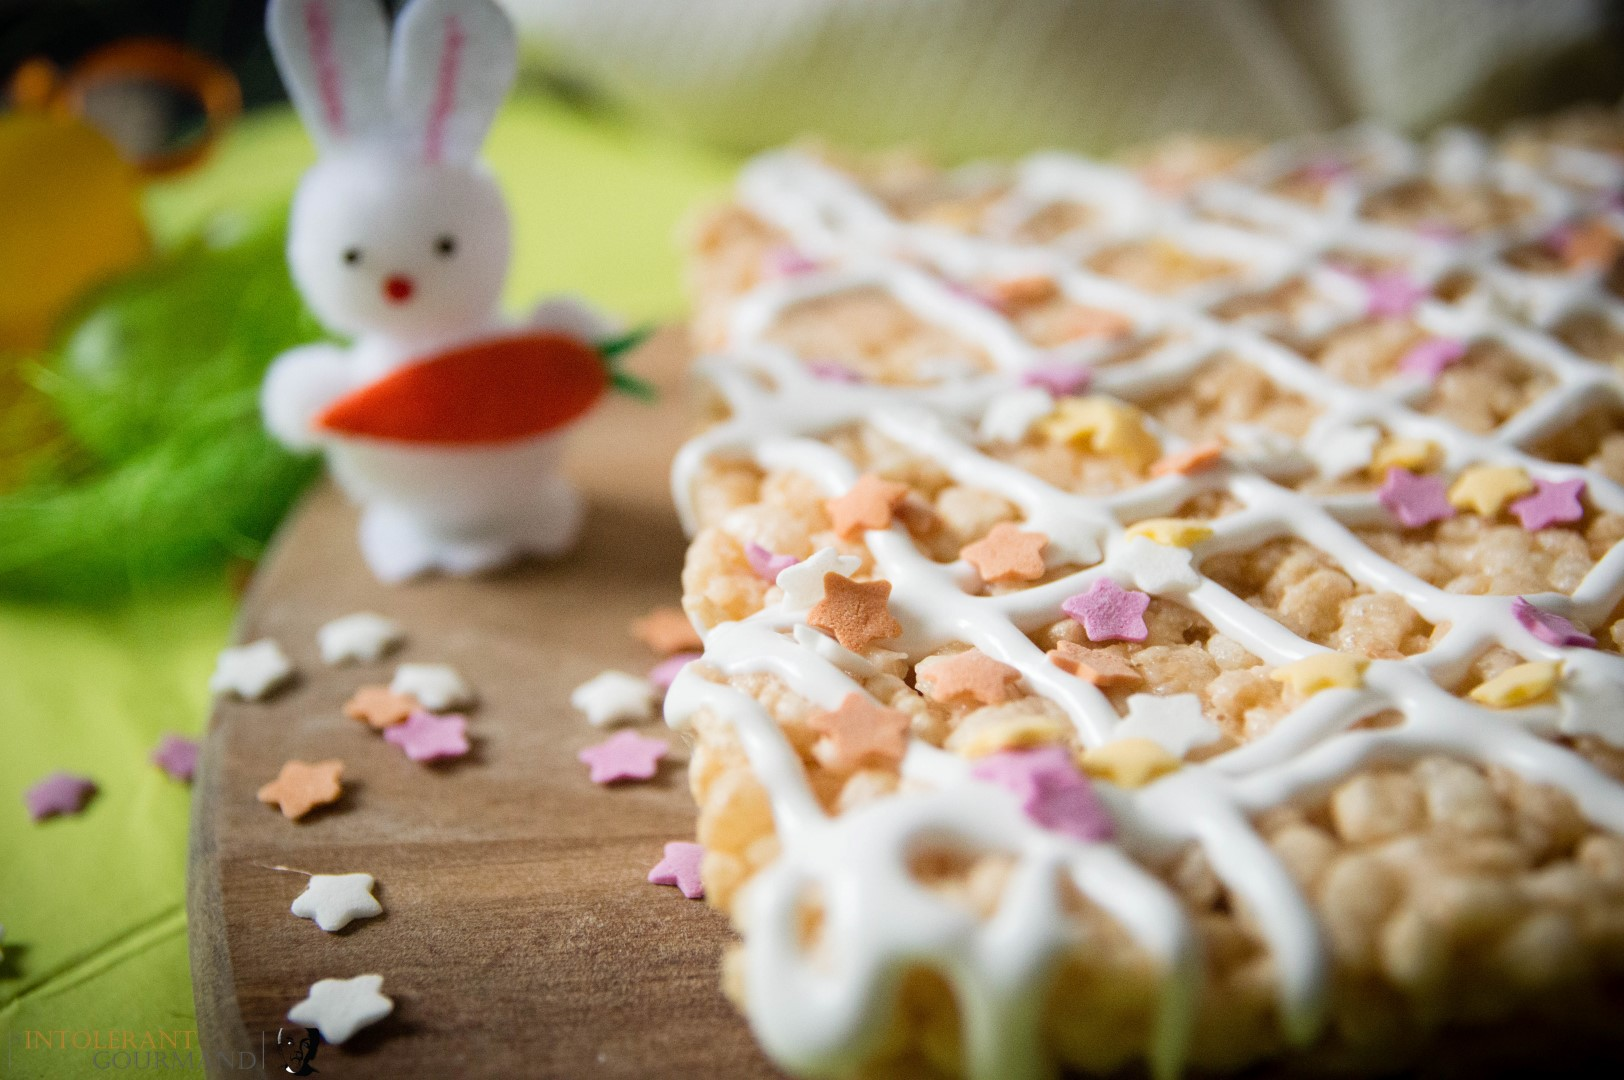 Easter Crispie Cakes - a new Easter twist on the classic crispie cake. Dairy-free, gluten-free and super simple to make too! It's the perfect treat to make with little ones! www.intolerantgourmand.com